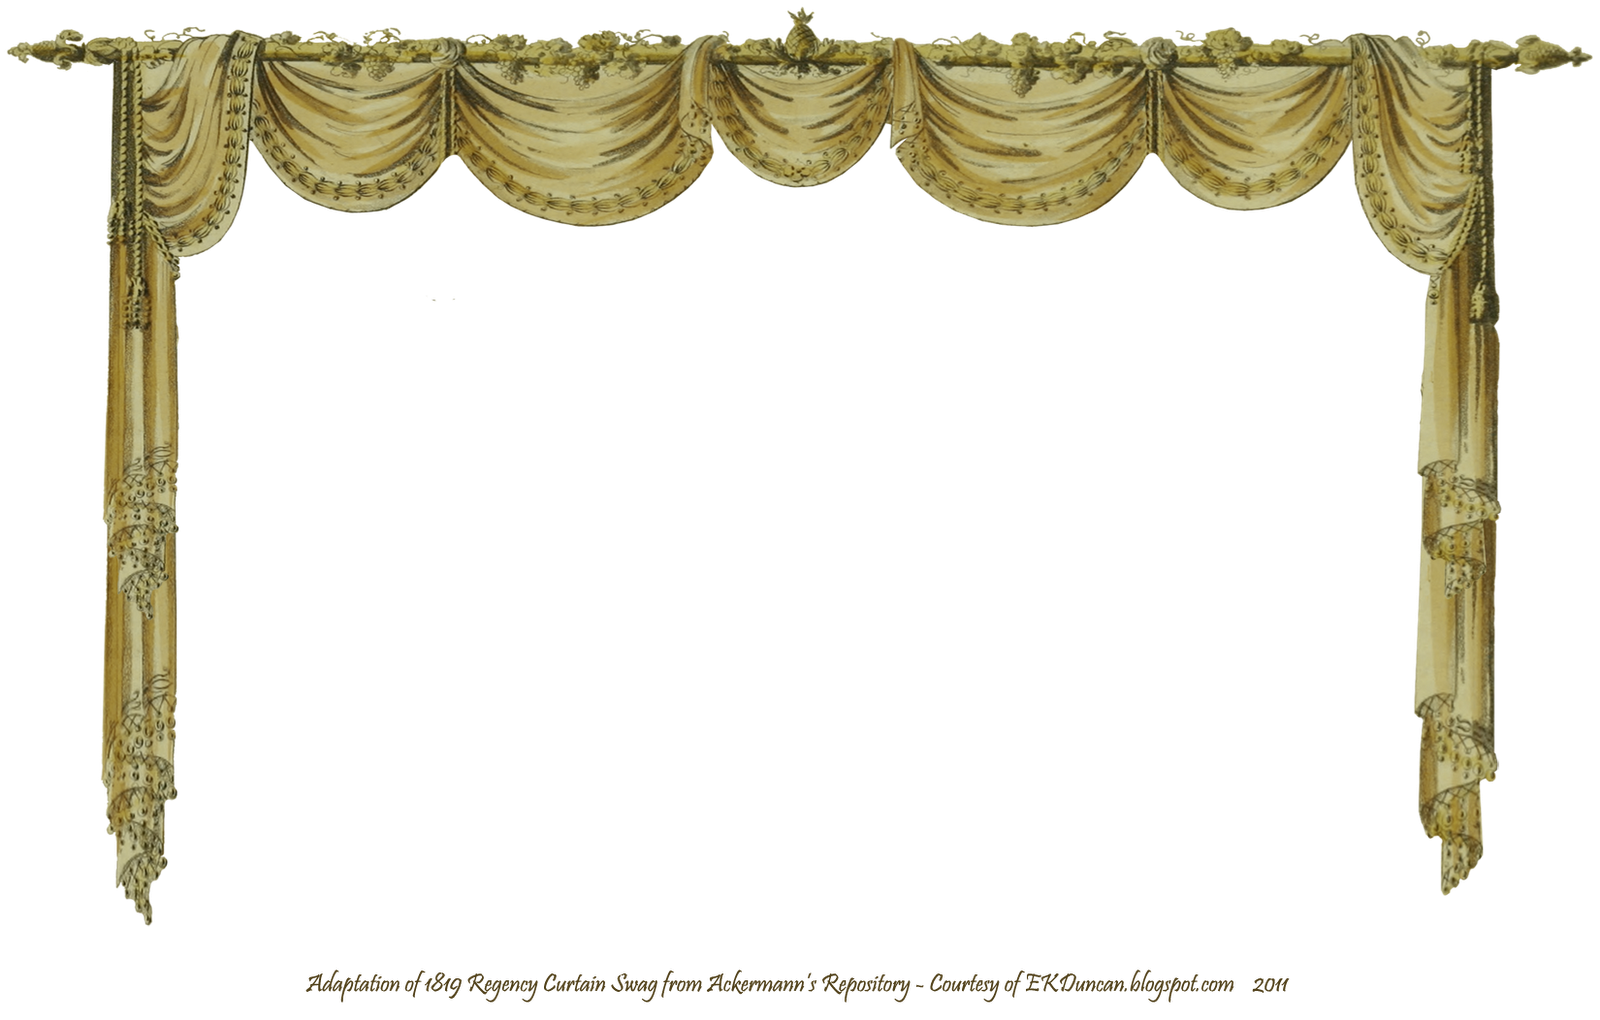 Theatre curtains png - Download Image